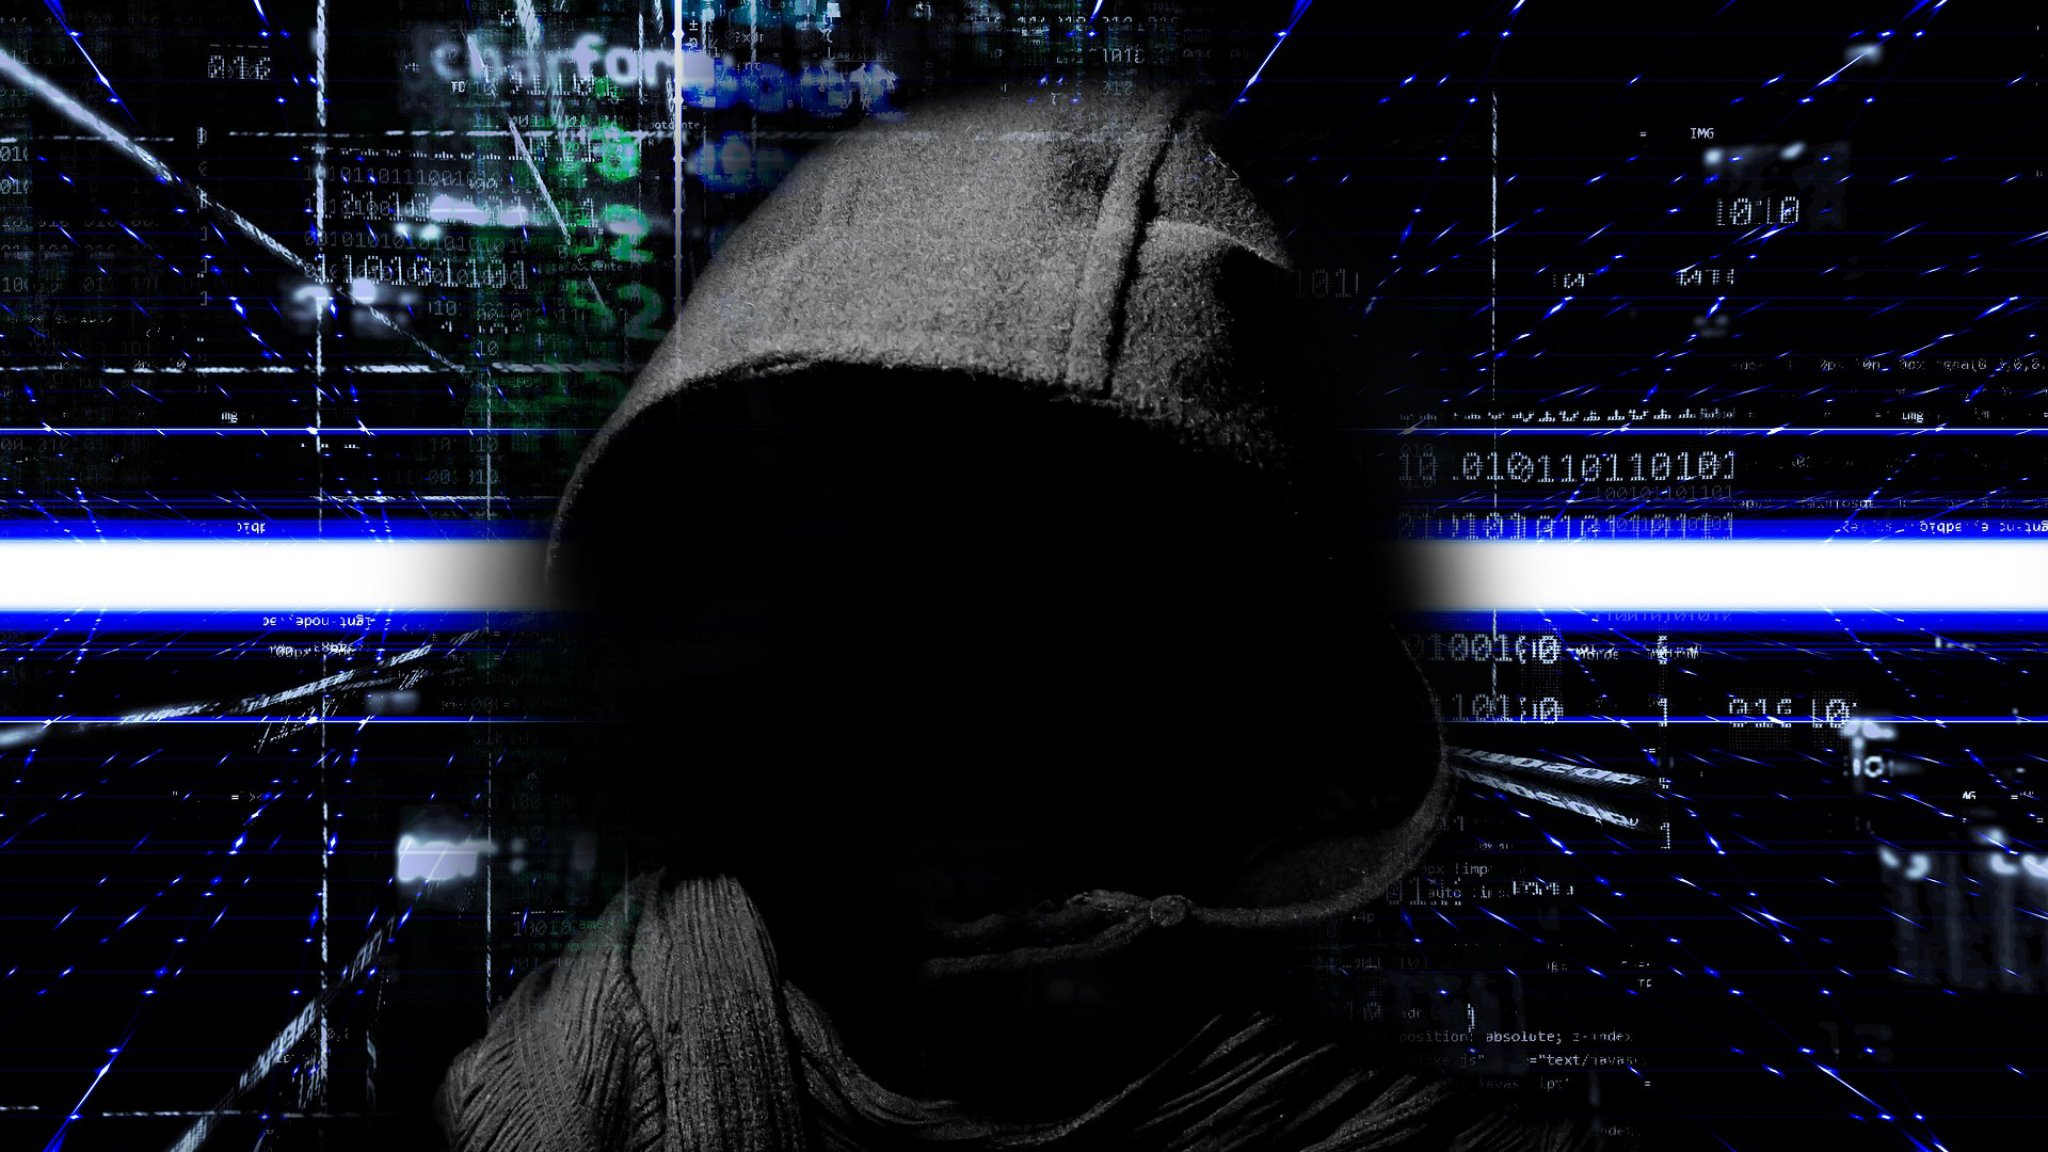 This new Android malware called BlackRock can steal passwords, card data from 337 apps including Gmail, Uber